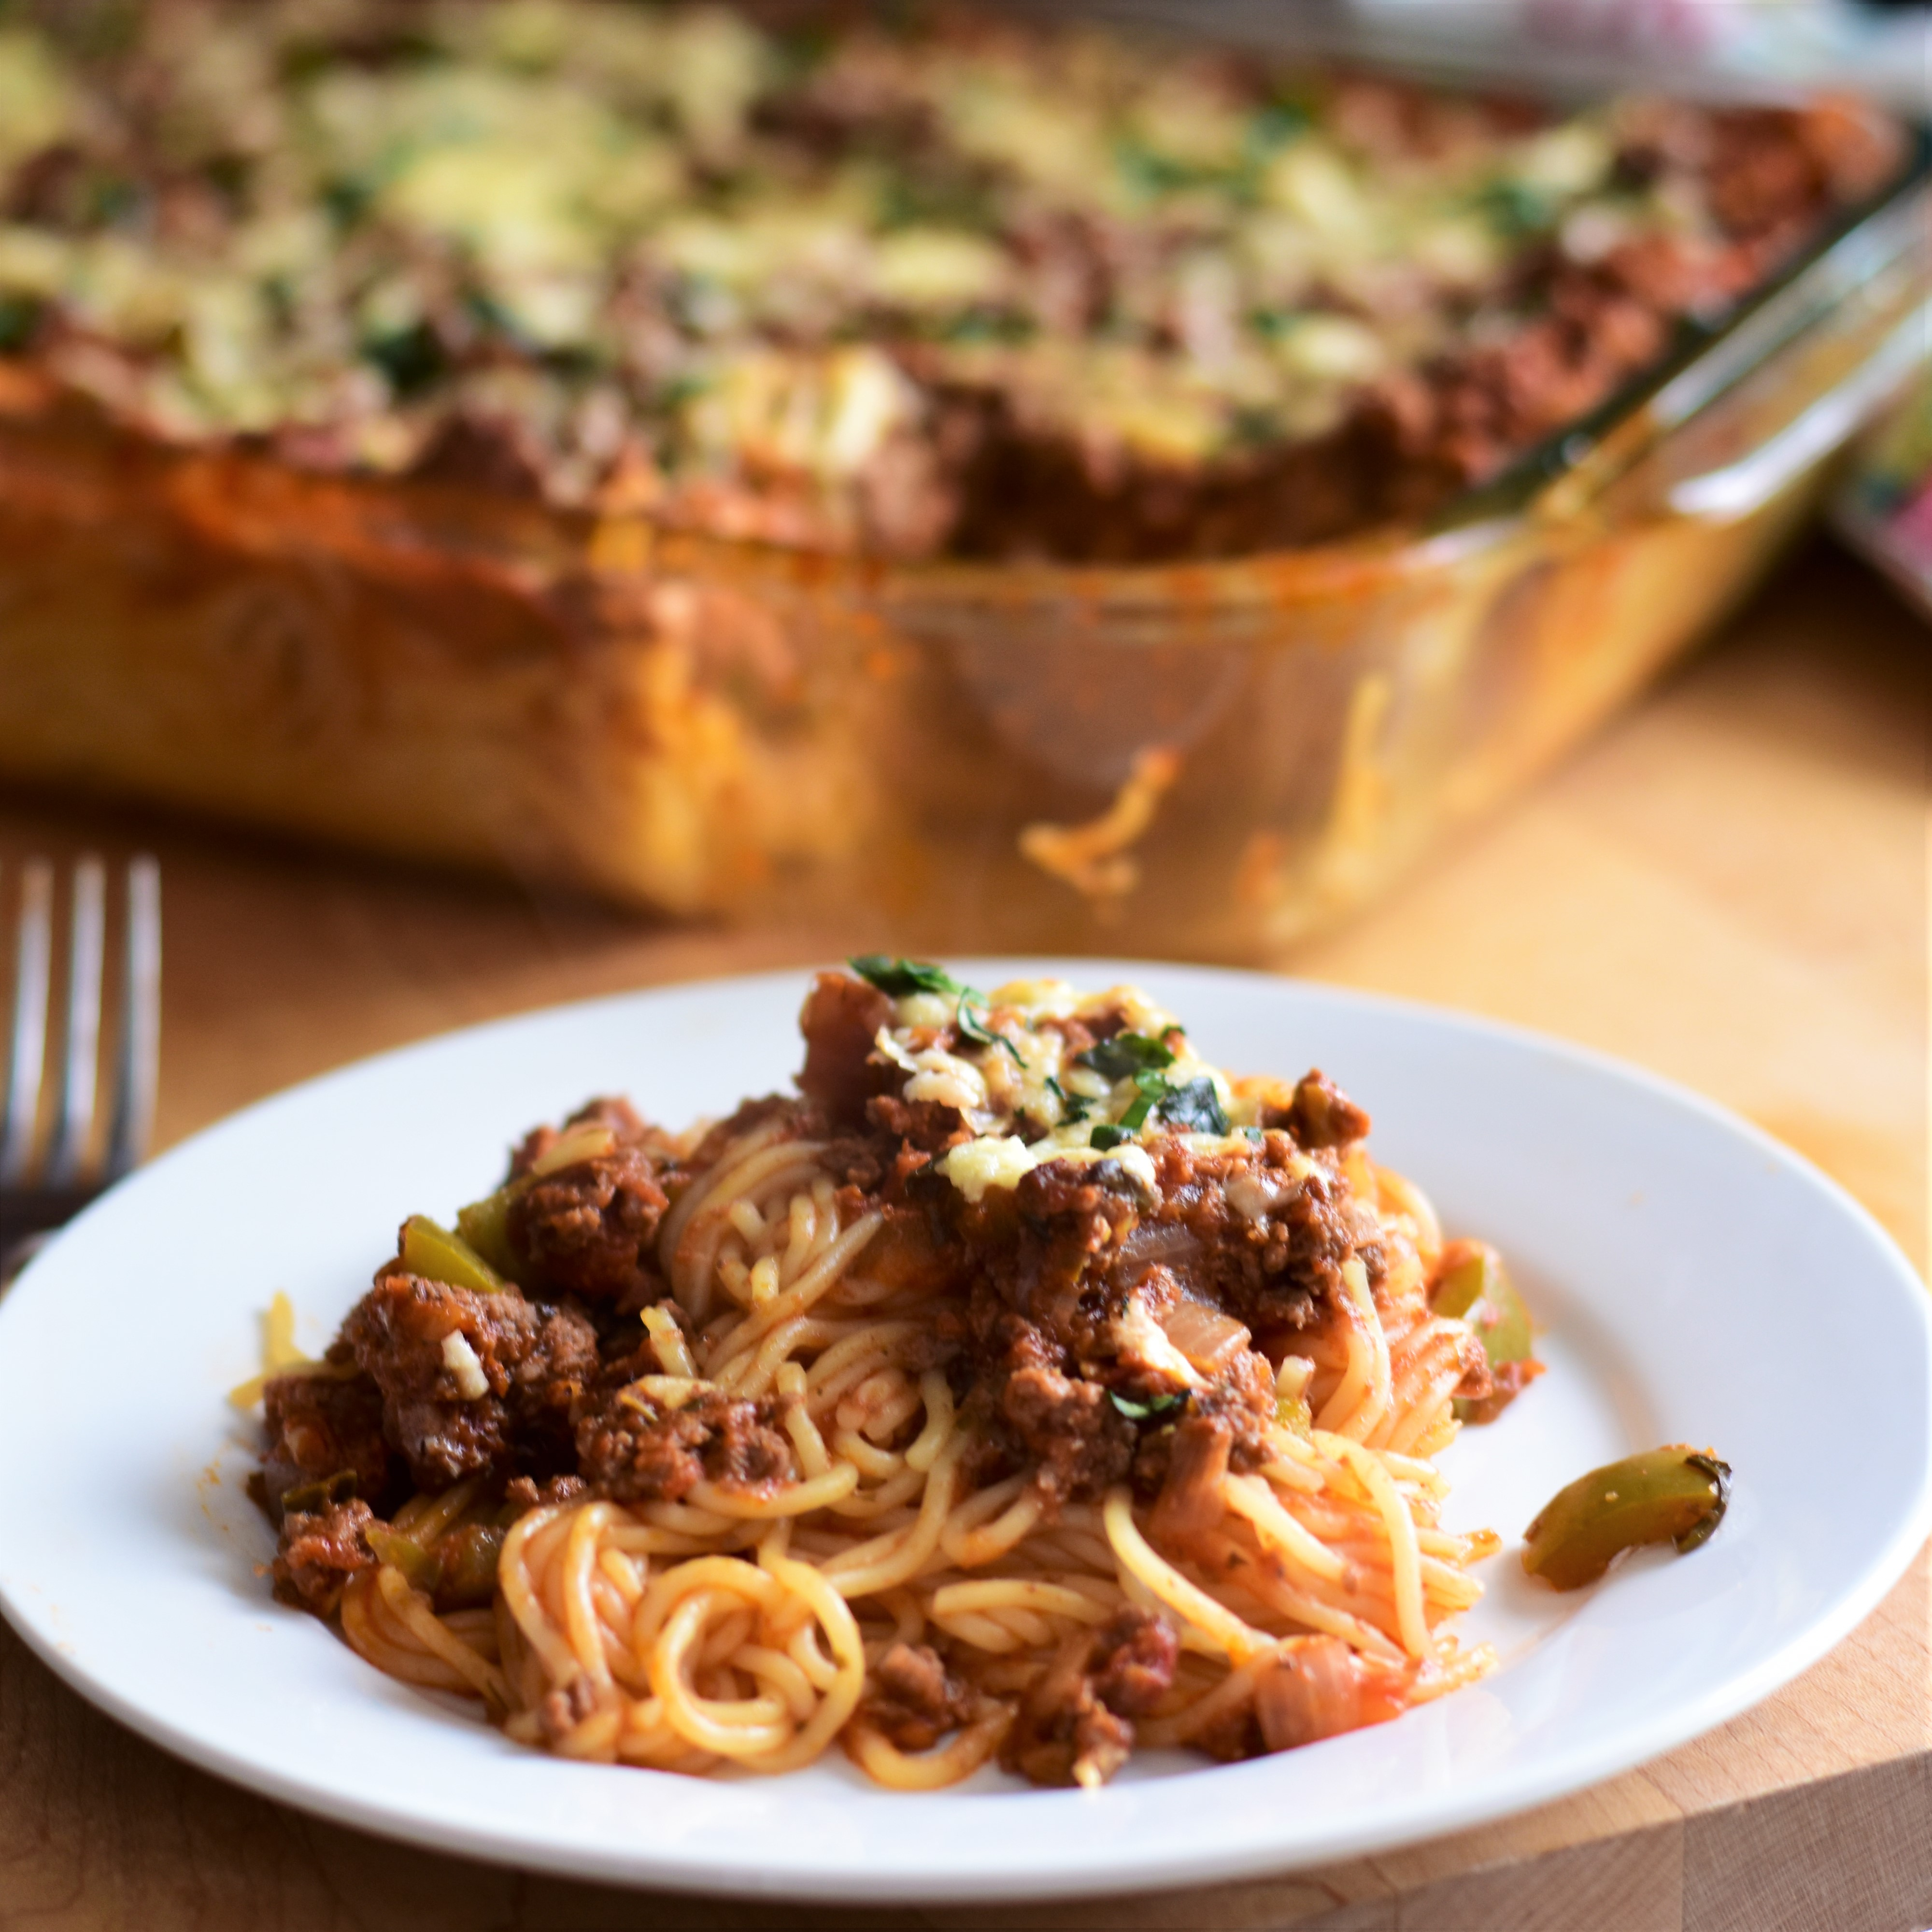 Baked Spaghetti with Venison